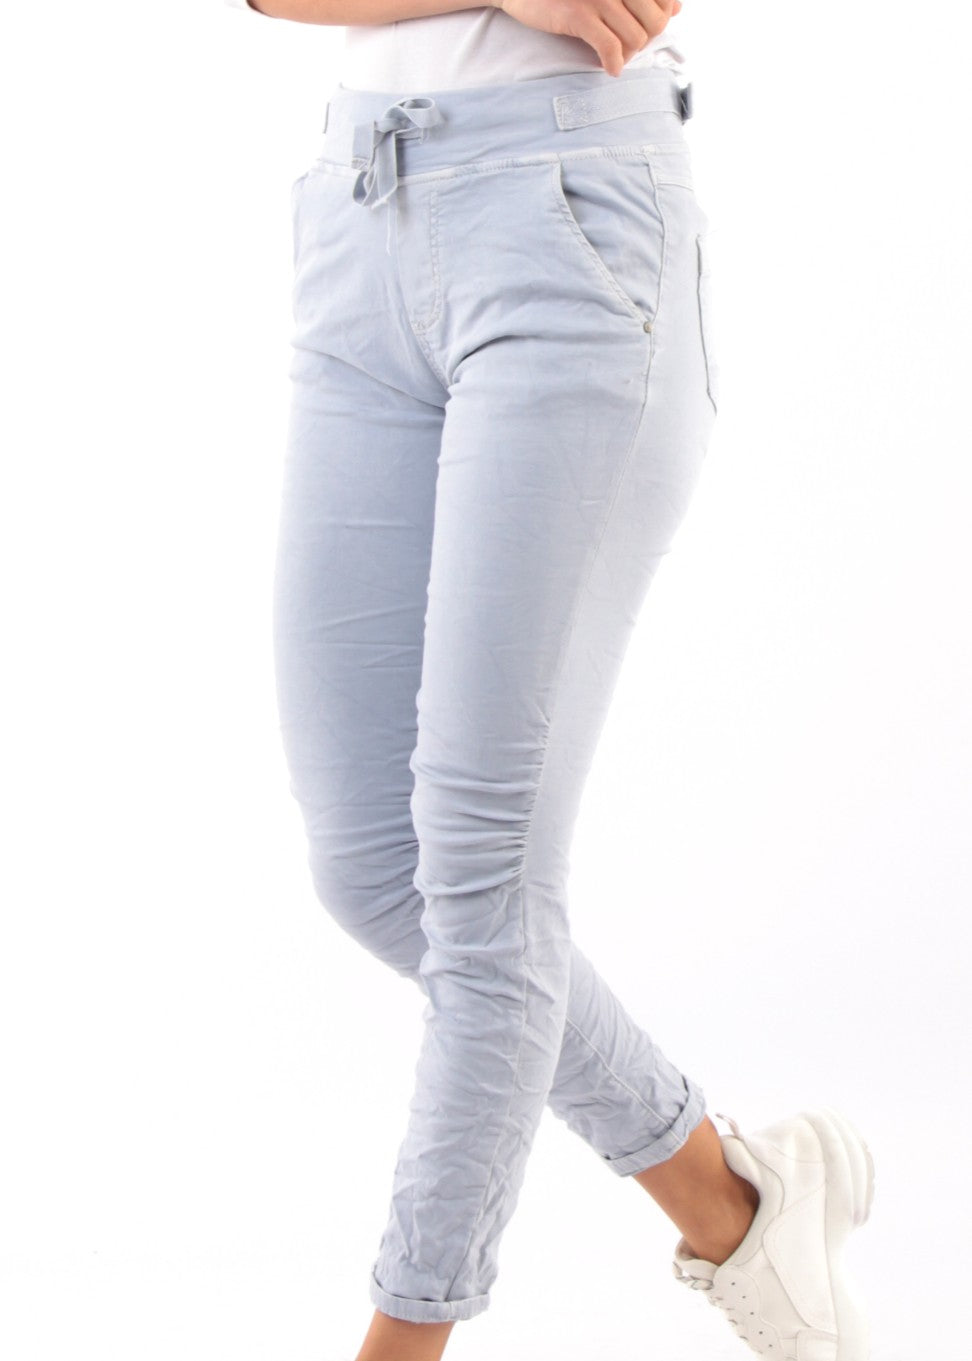 SOFIA - Pull-on Jeans -